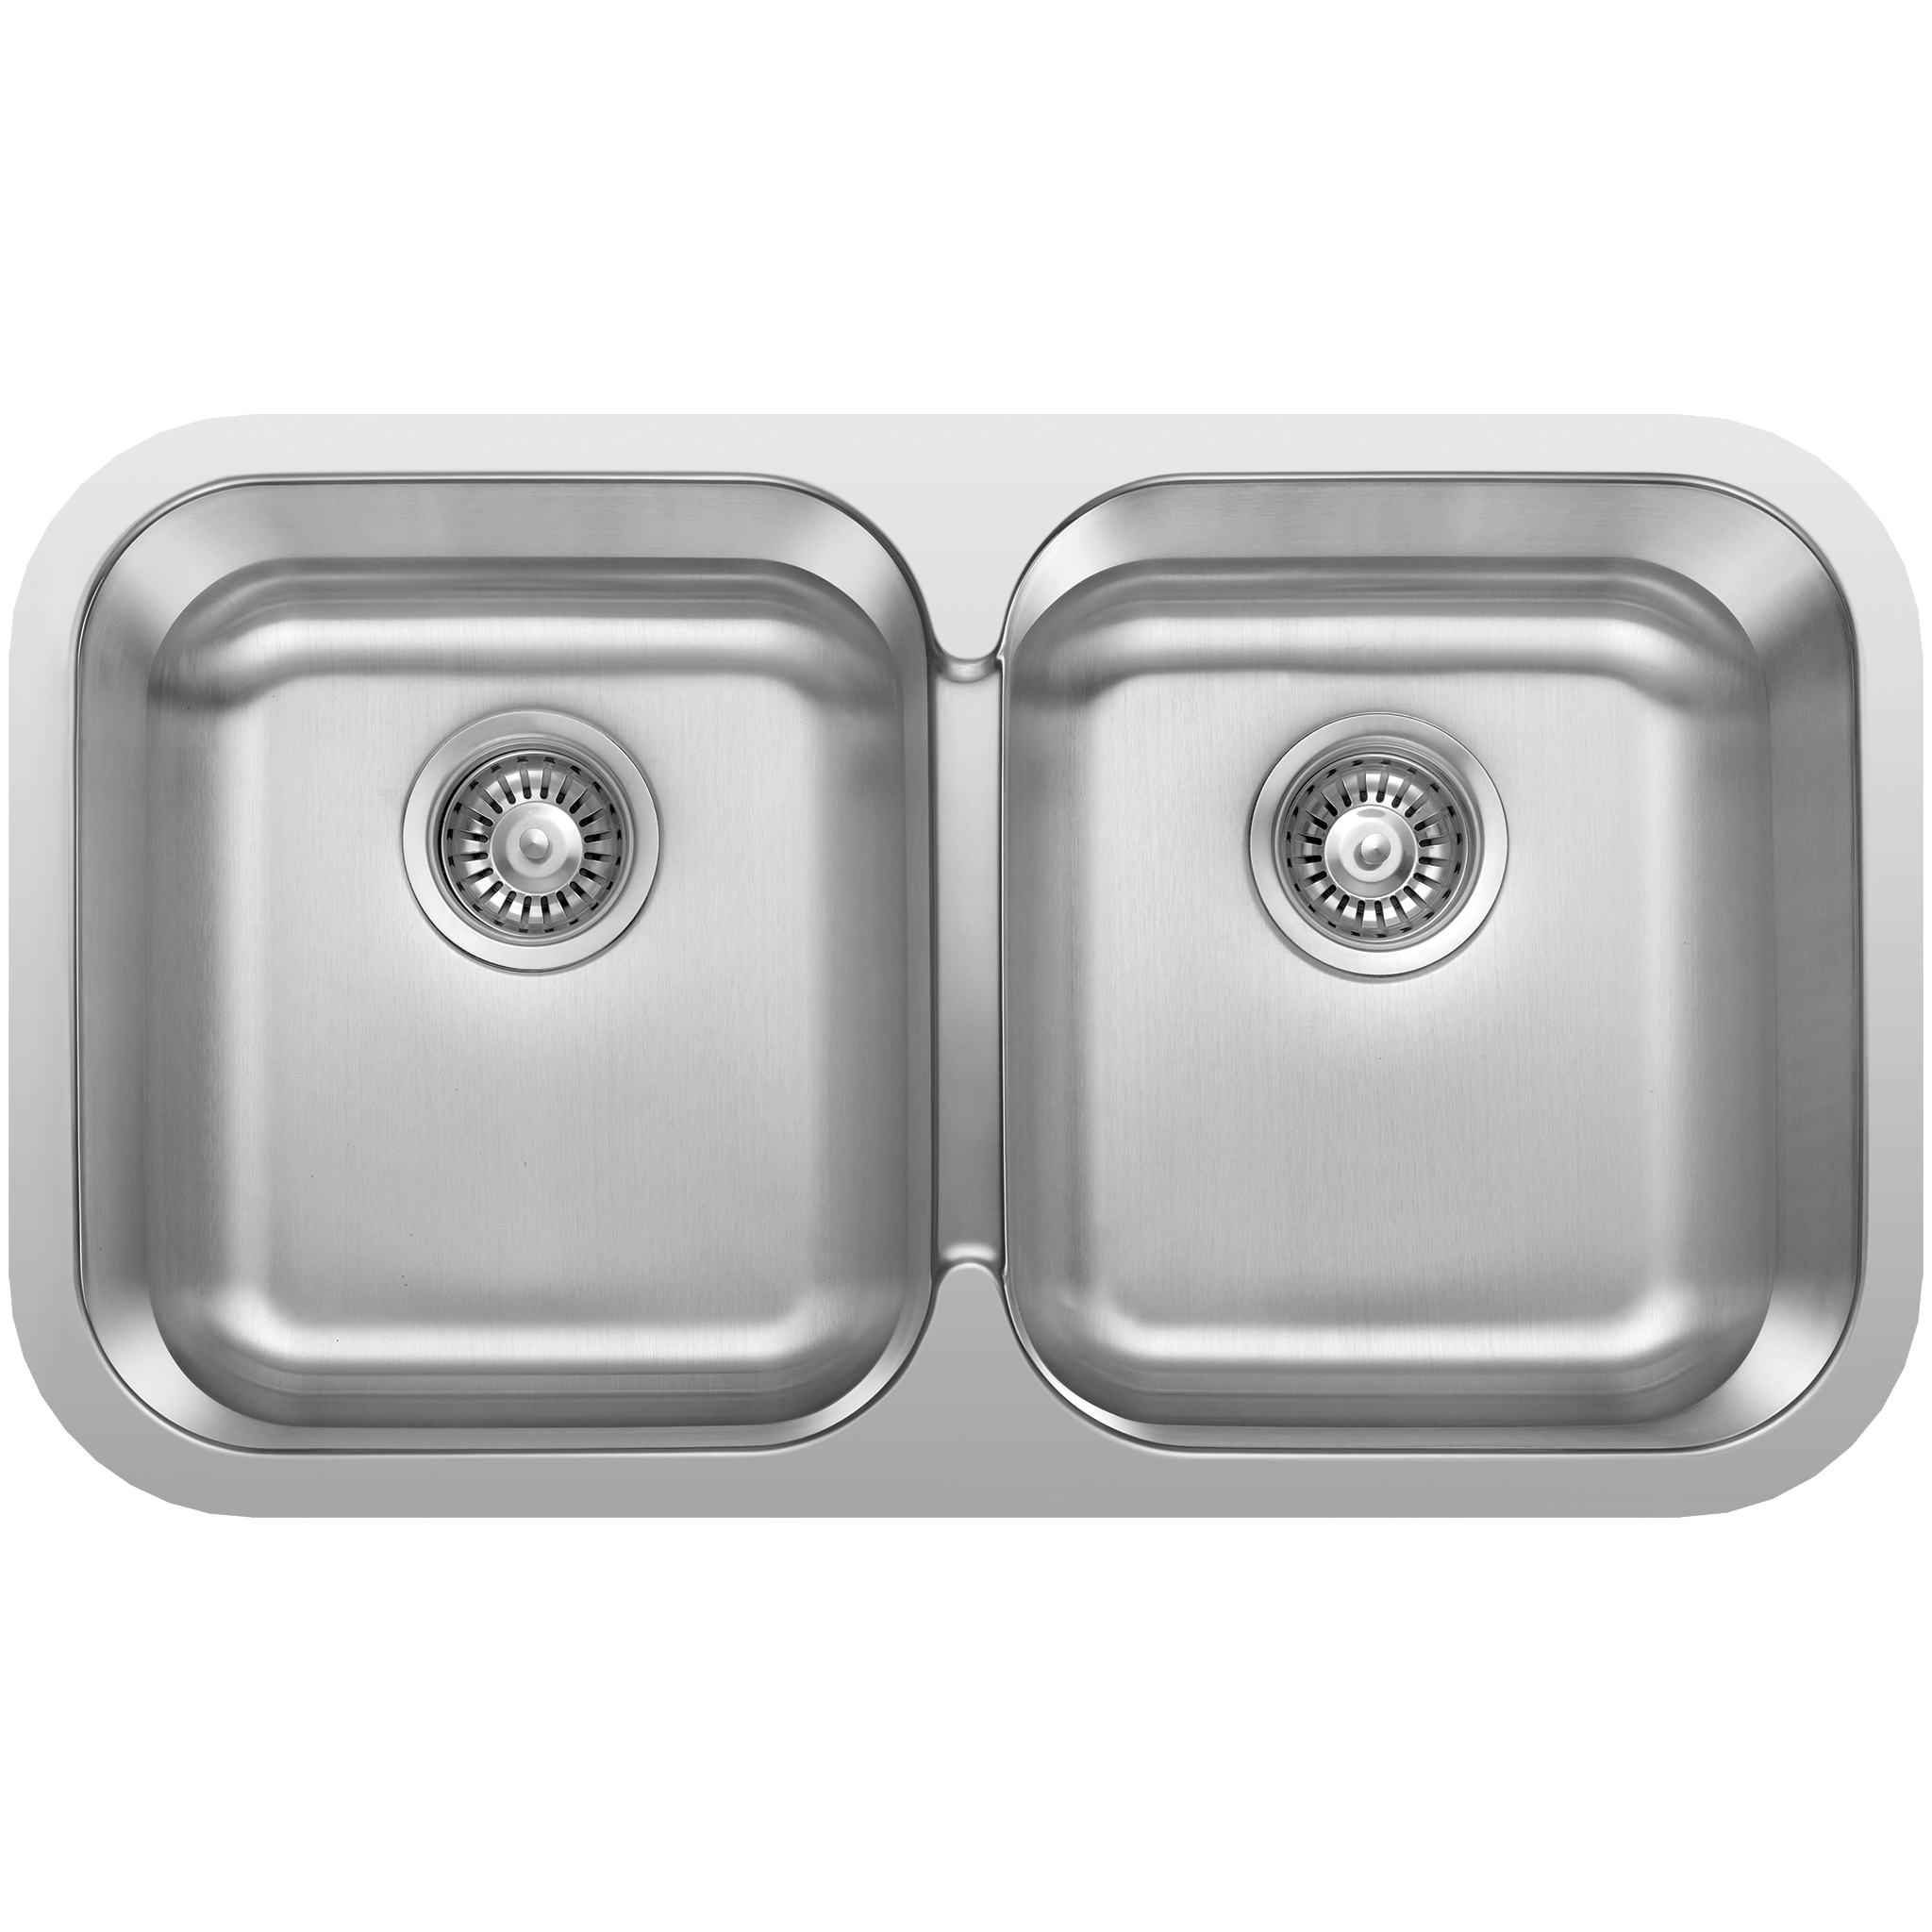 Superior SinkRus 20318U   Grade 304 / Gauge 18 Stainless Steel   Double Bowl    Undermount ...